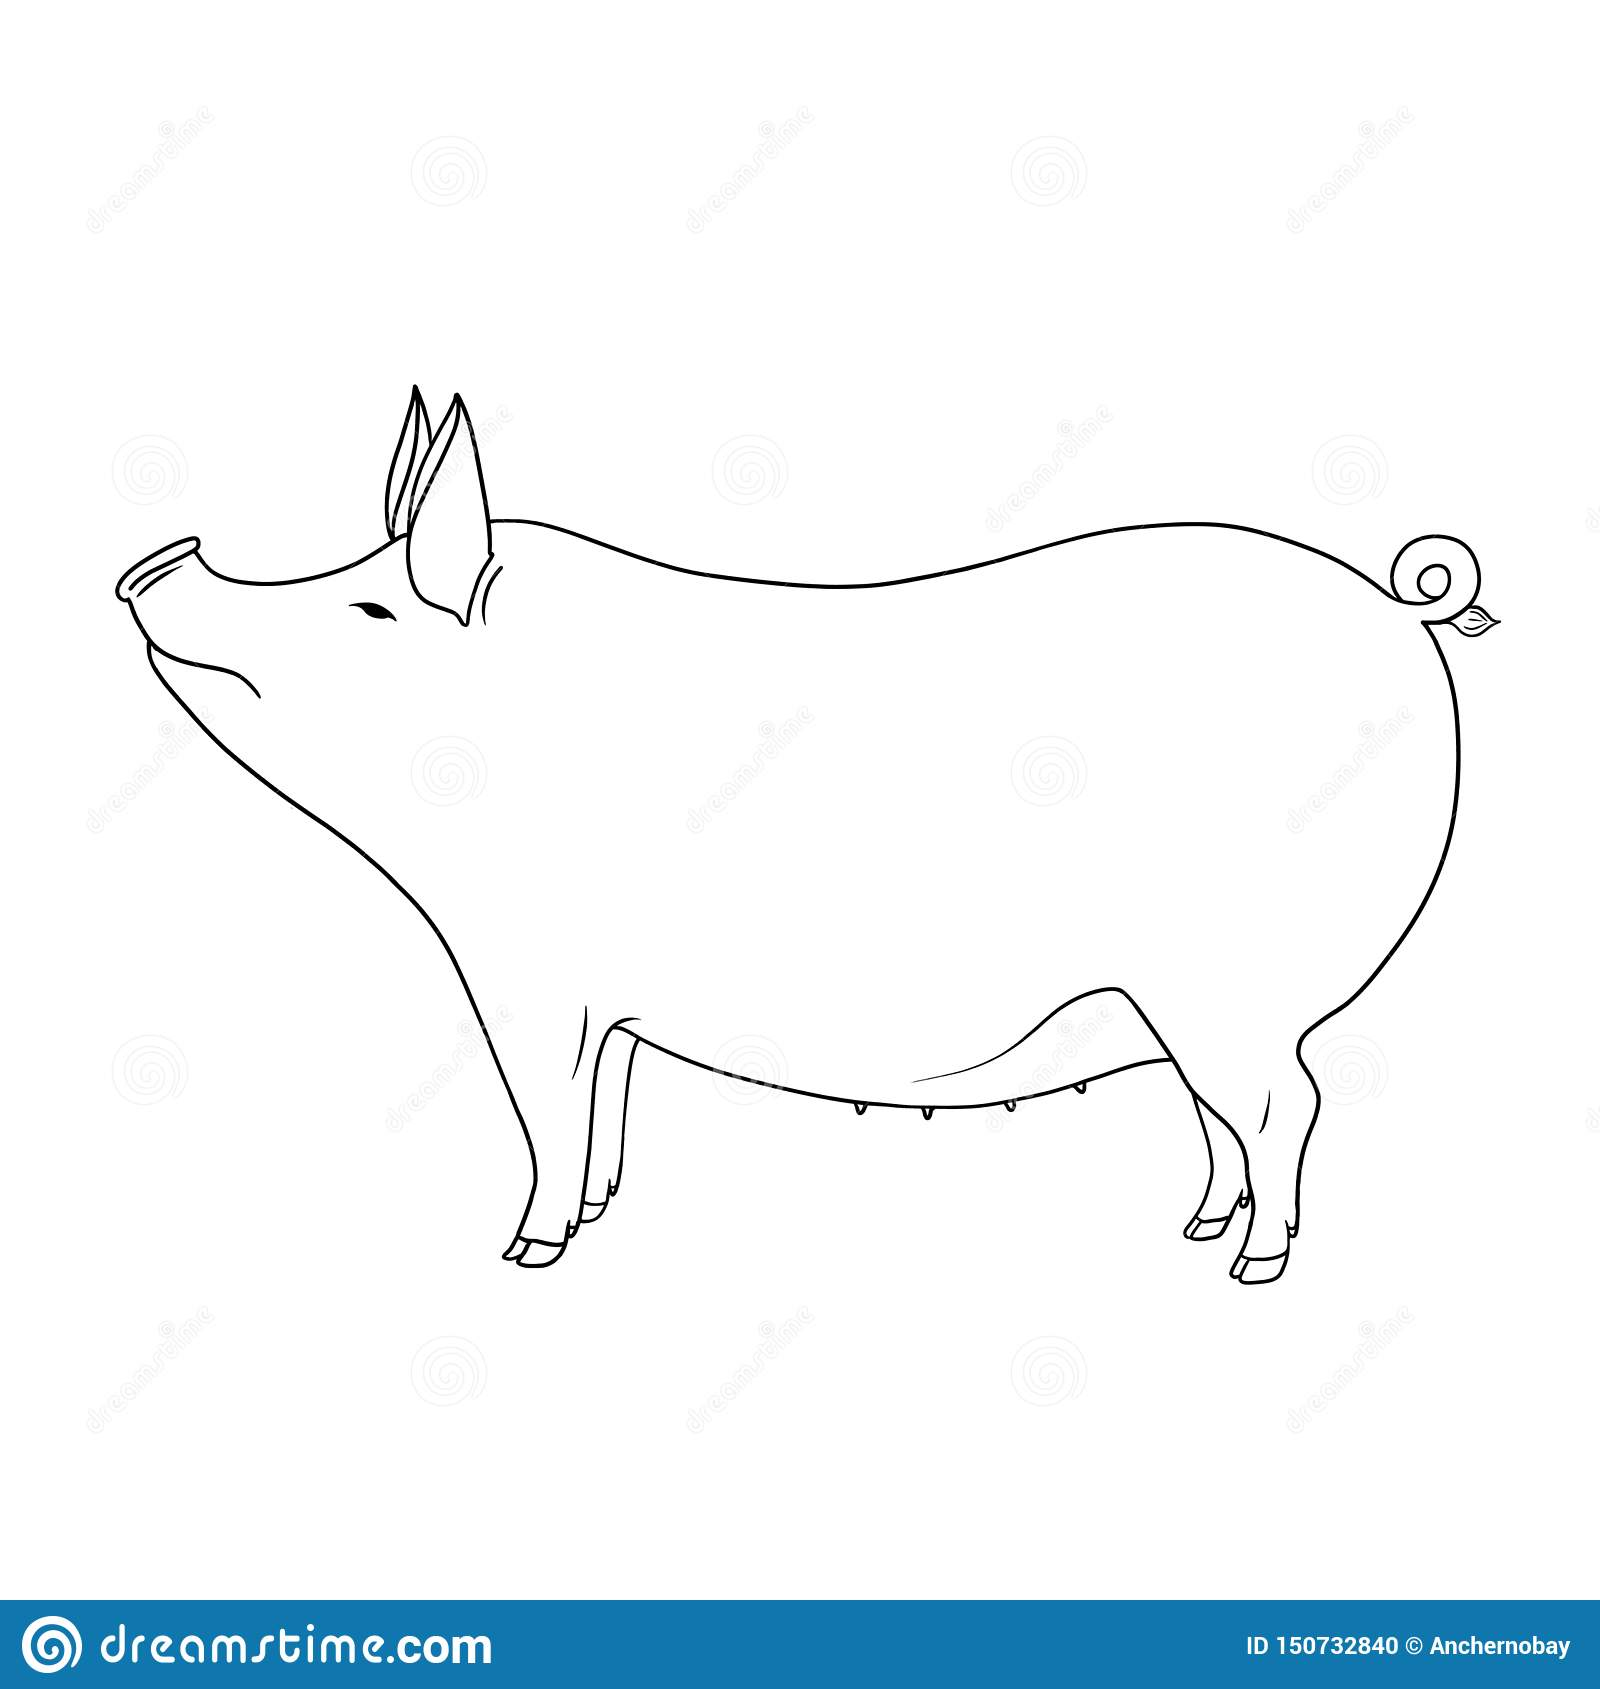 Line art farm animal cute pig hand drawn illustration isolated on white background